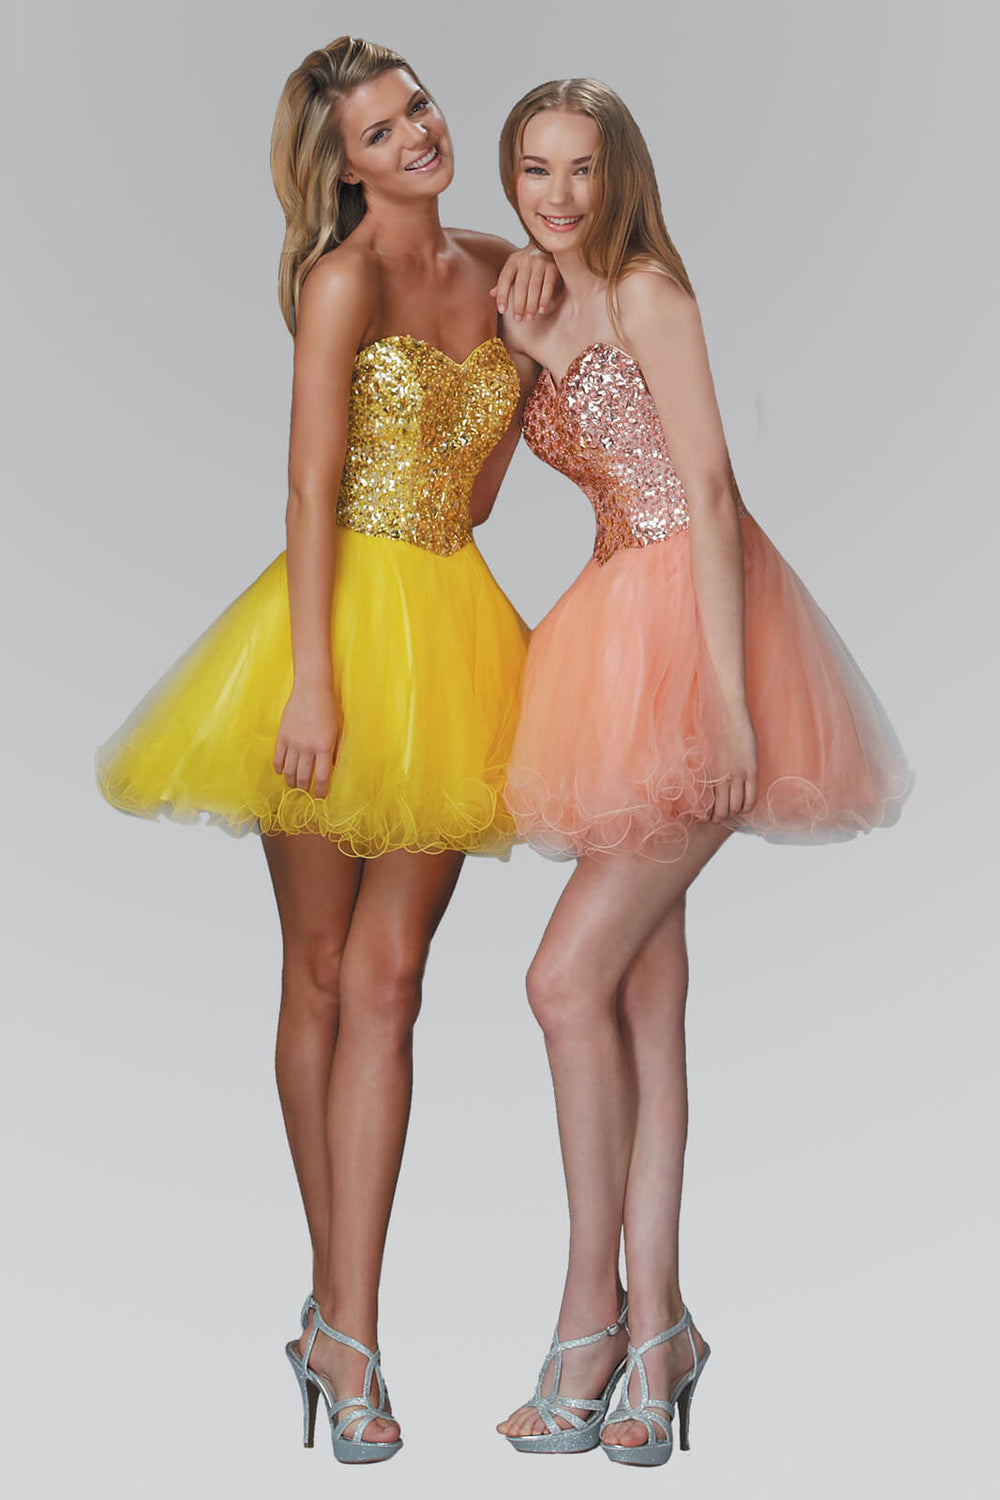 Sweetheart Short Prom Dress Homecoming - The Dress Outlet Peach